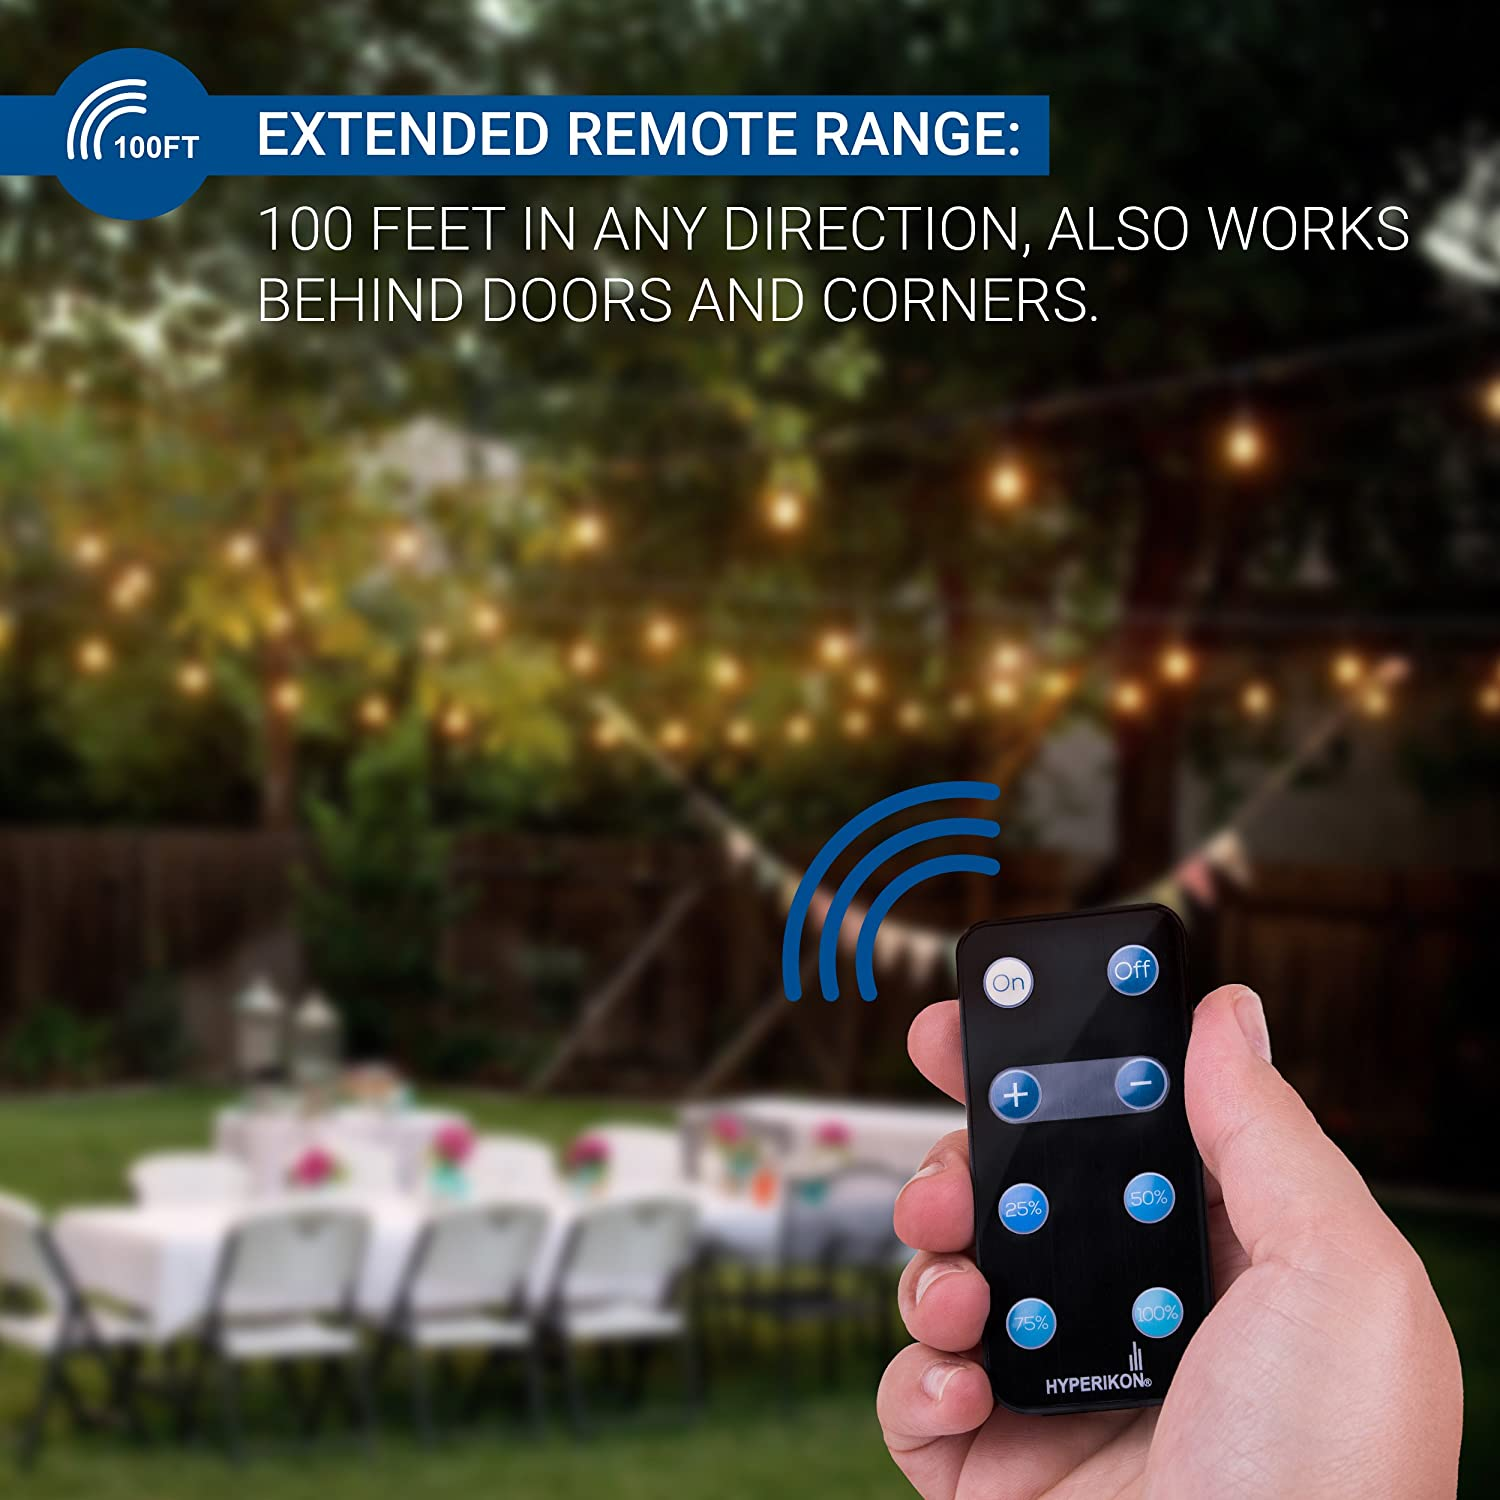 Hyperikon Plug In Dimmer Waterproof Led Outdoor String Light Wireless Controlled Lightdimmer Cord 39ft With Remote